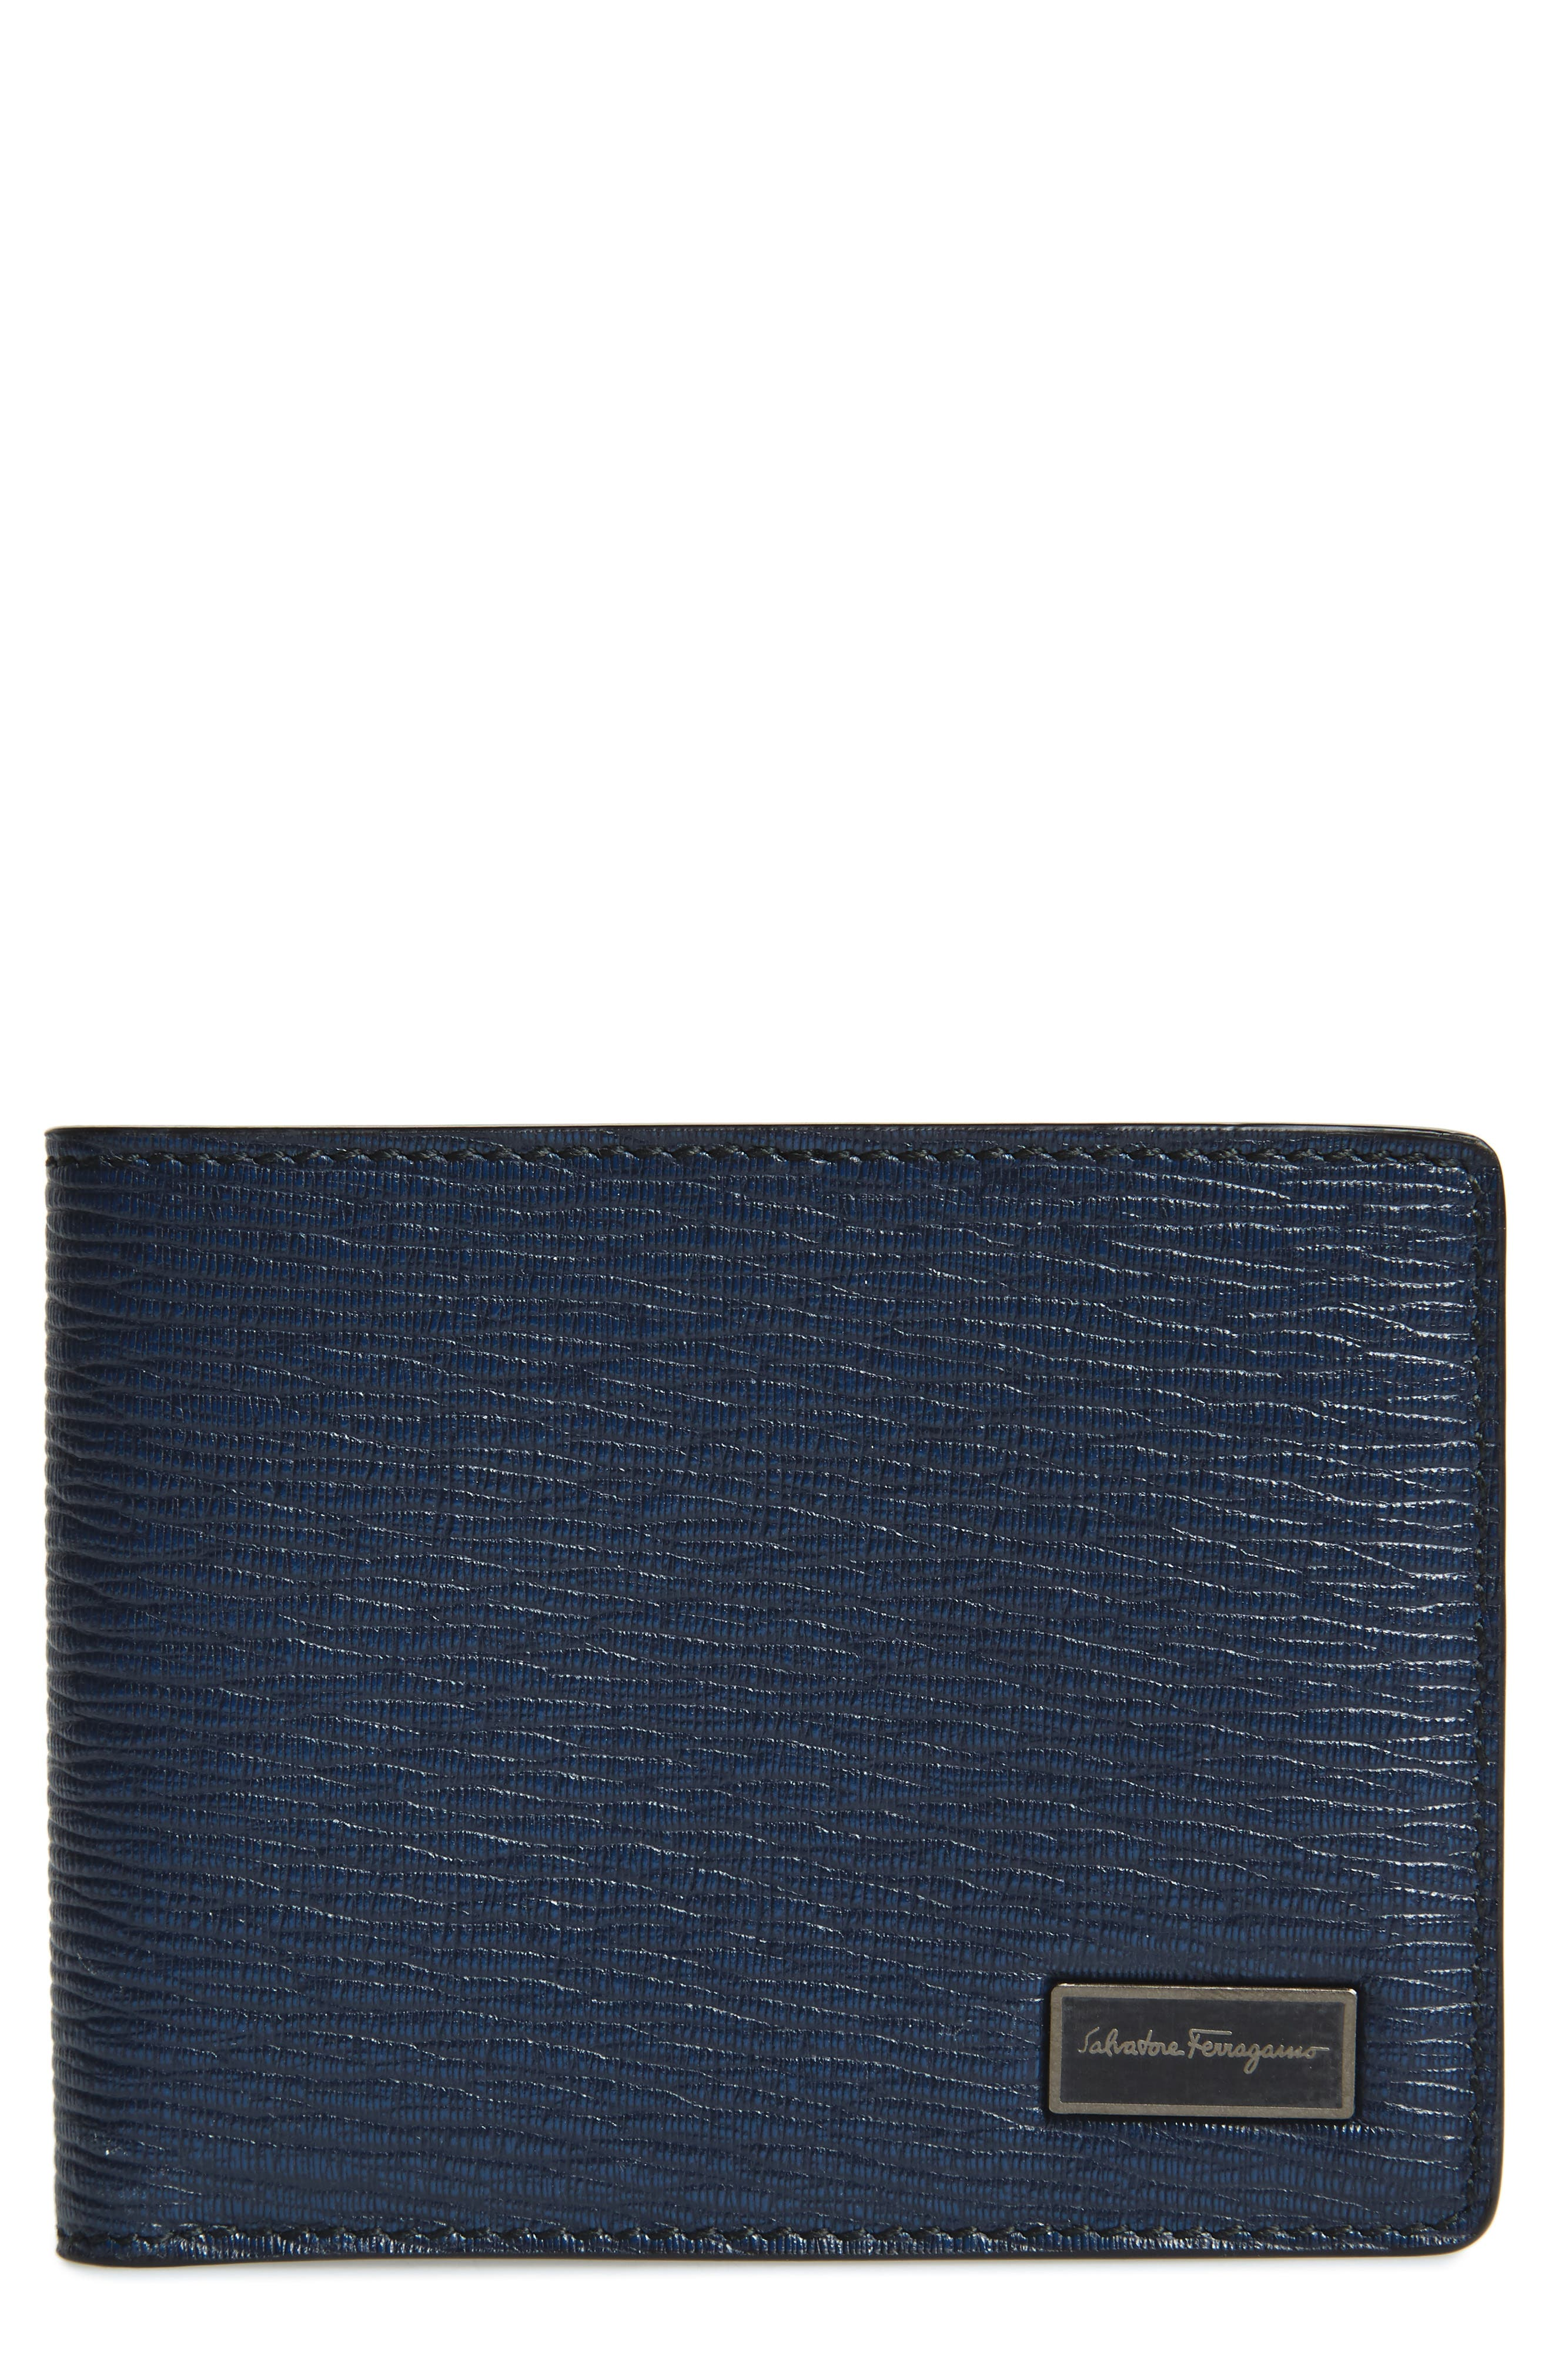 Revival Leather Wallet,                         Main,                         color, 462